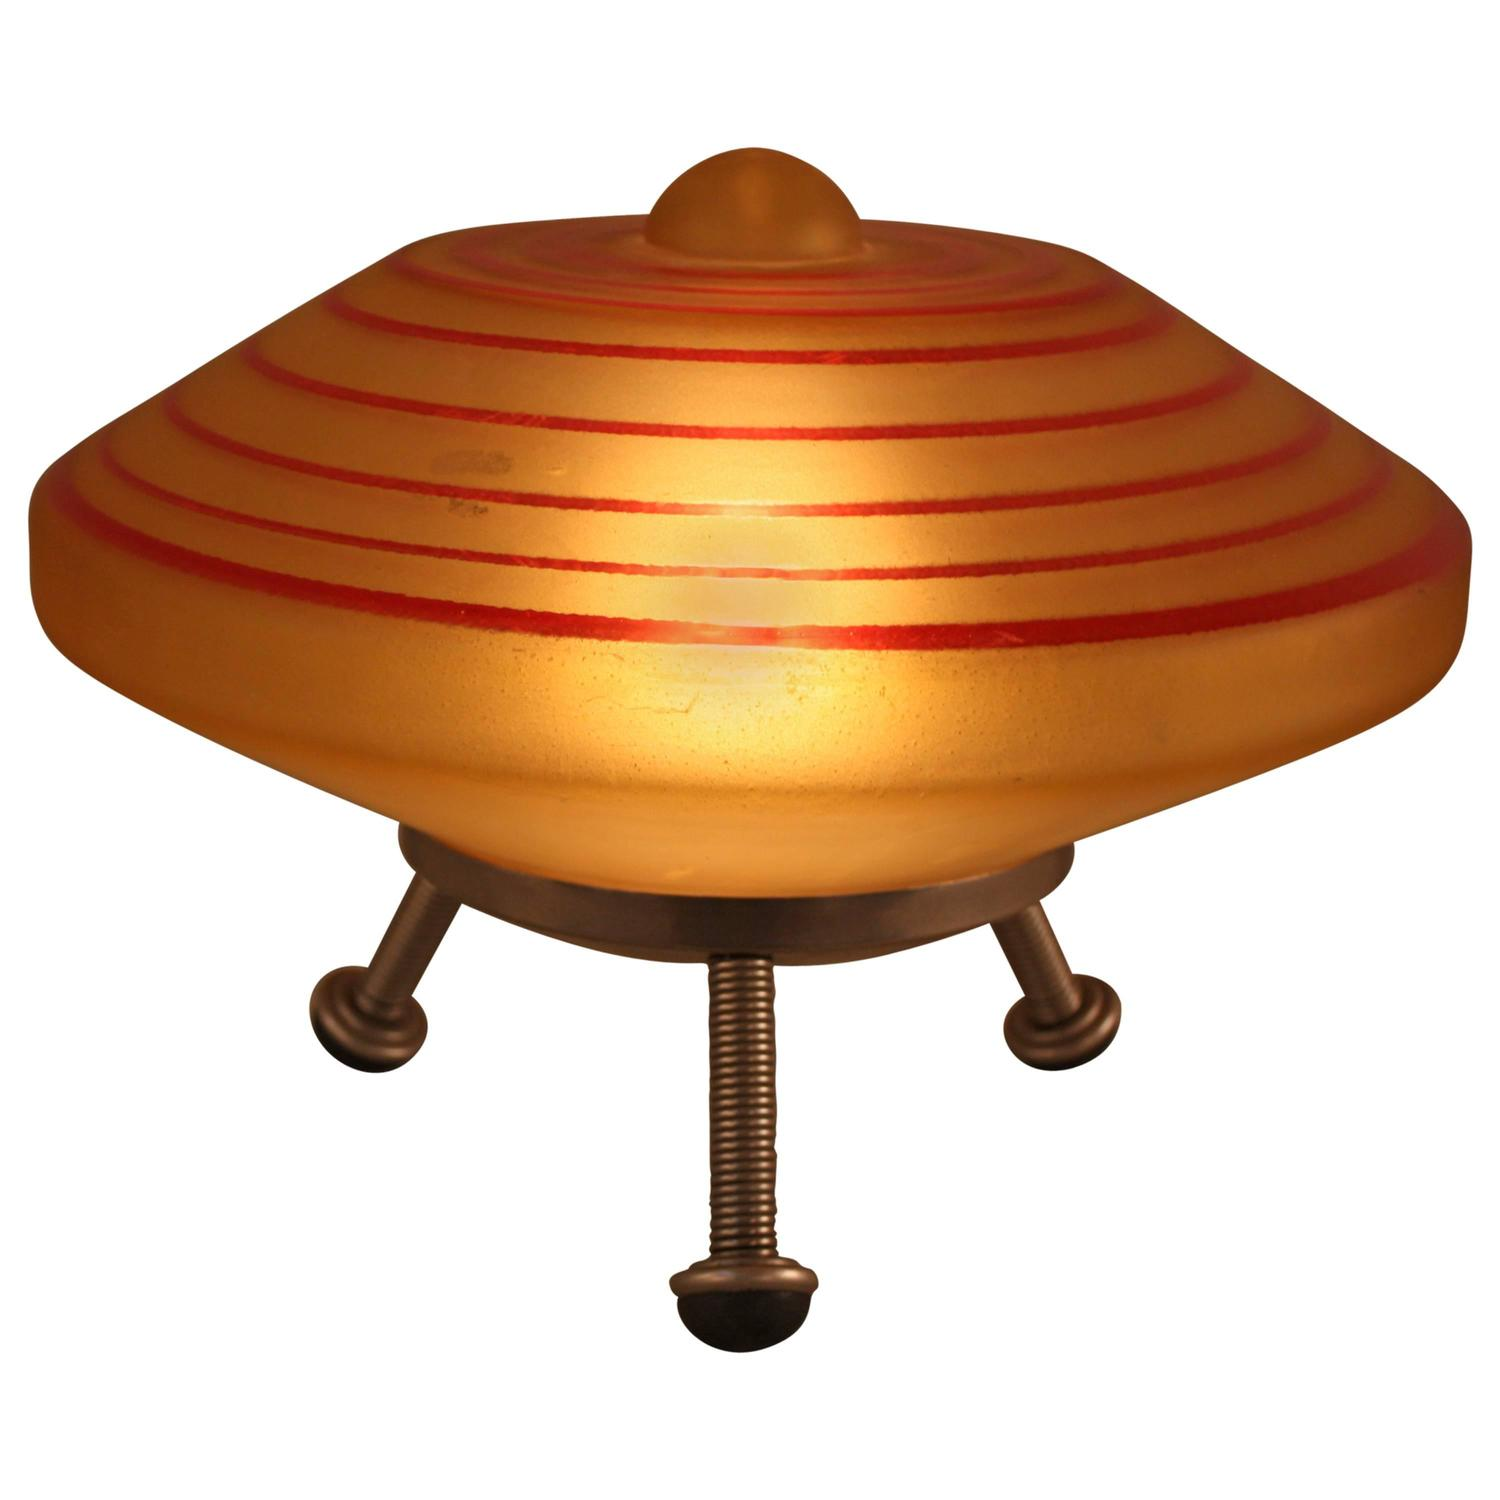 Ufo alliance spaceship table lamp at 1stdibs for F k a table lamp